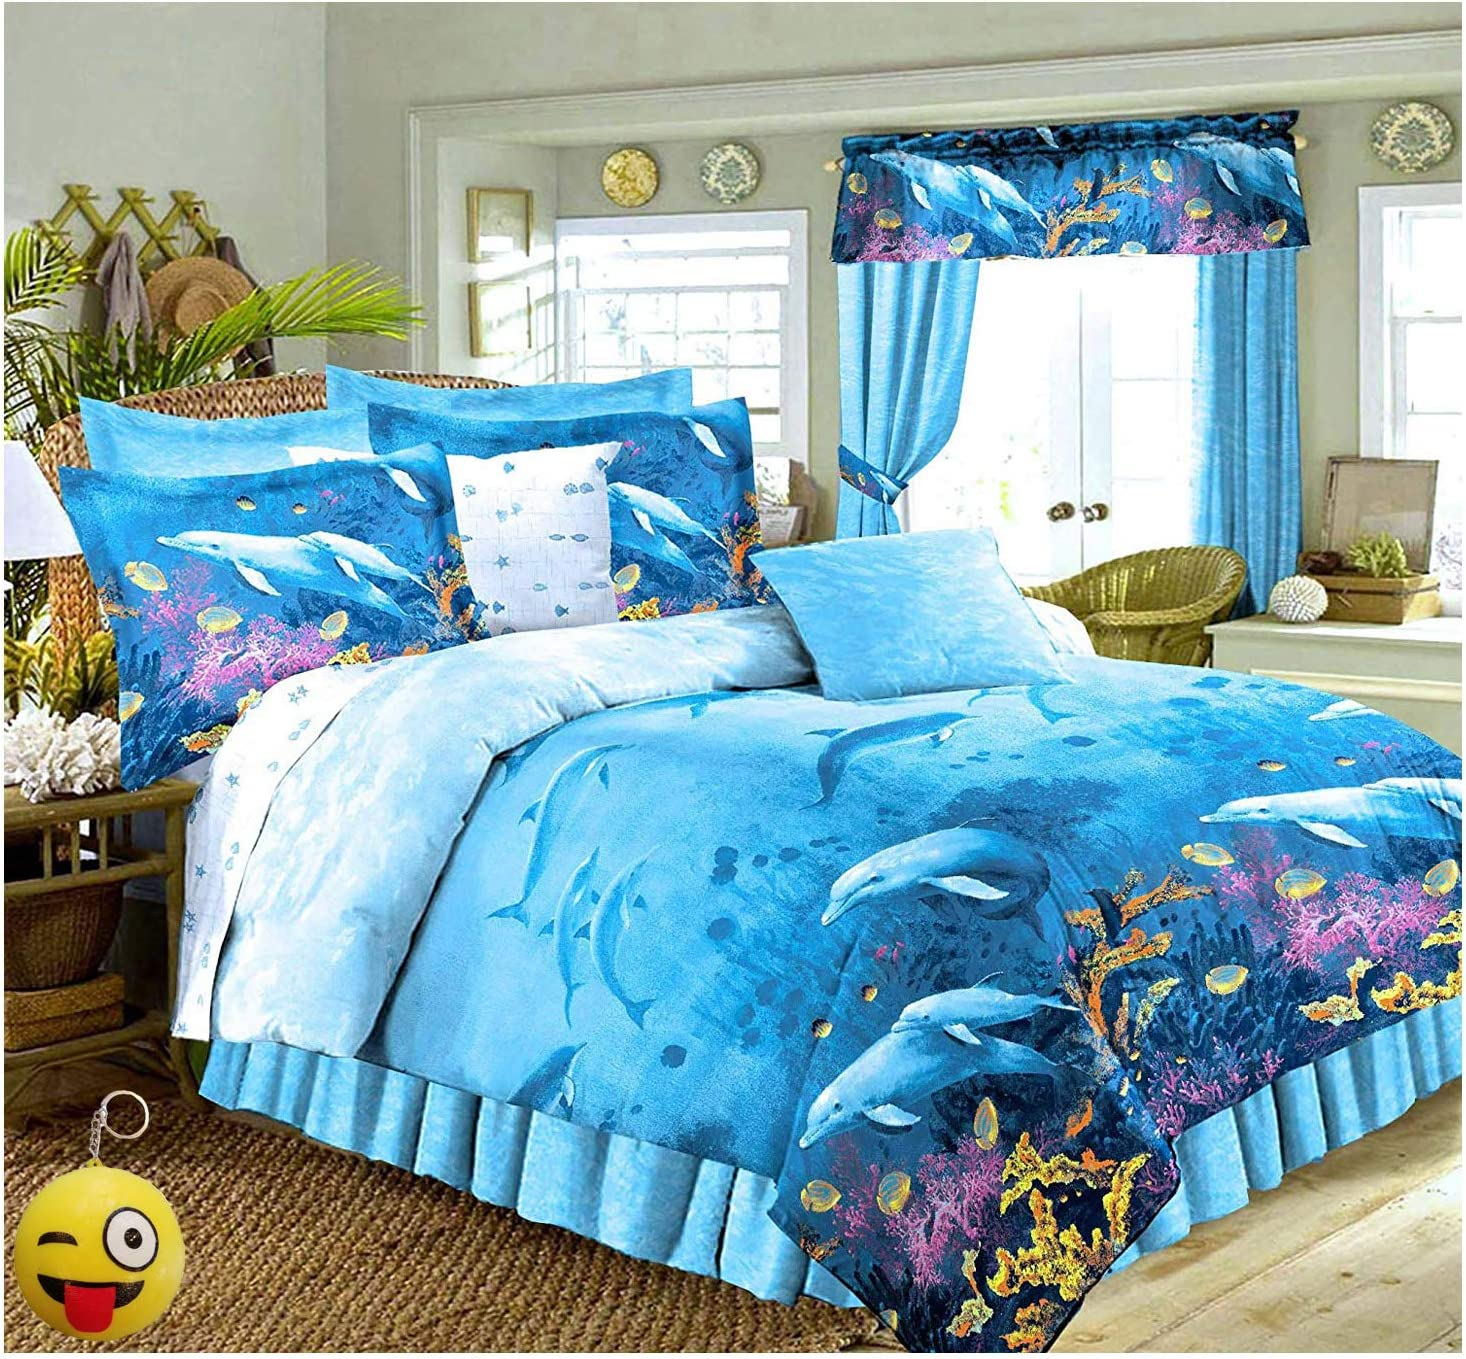 """DOLPHINS Cove Sea Life Blue Comforter & Sheet Set (6pc Twin Size 66"""" x 86"""")"""